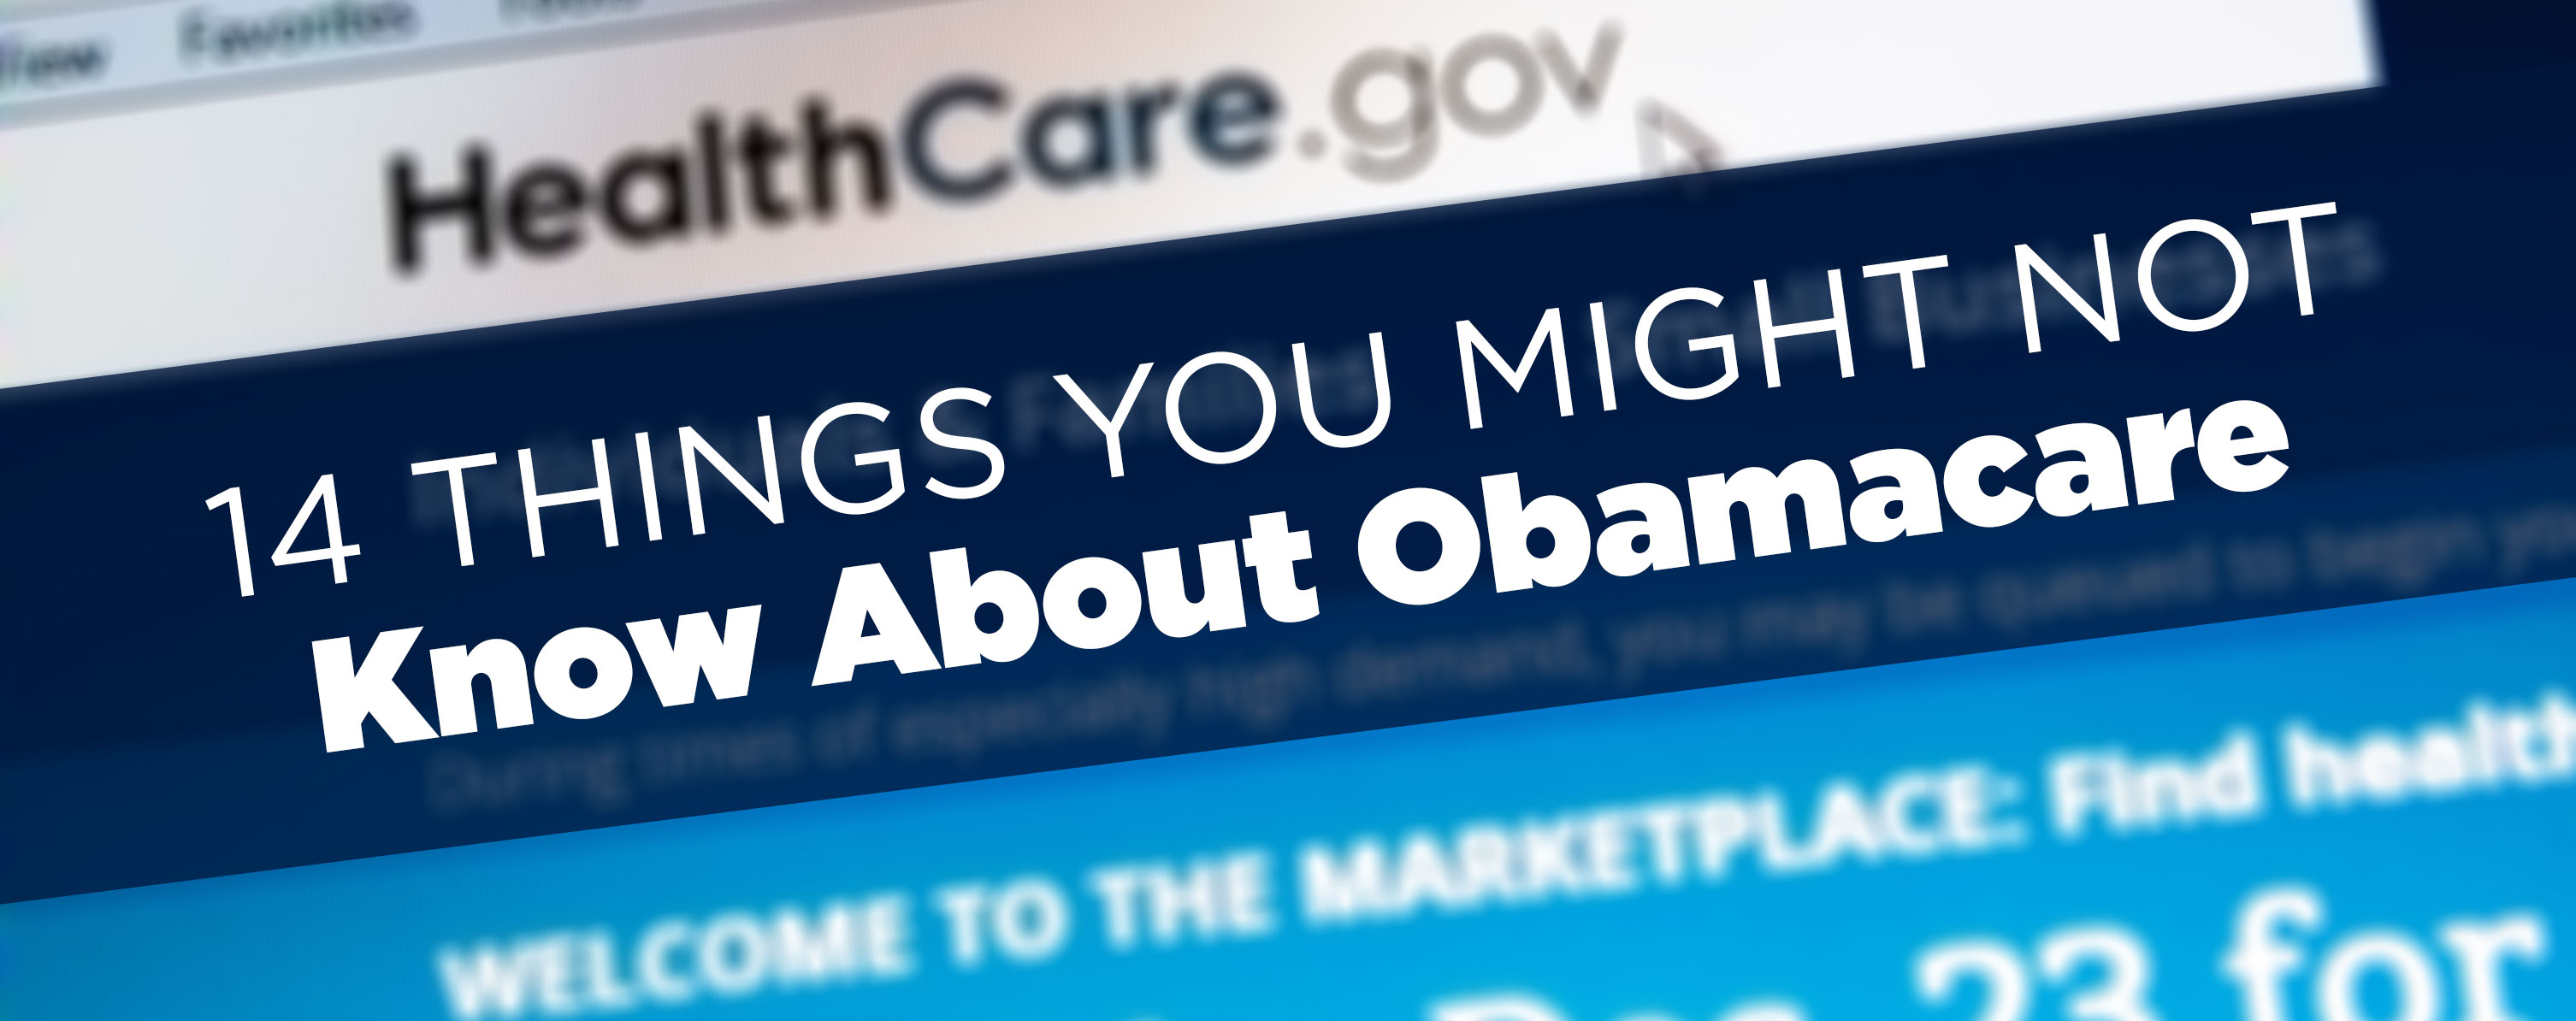 14 things you might not know about Obamacare